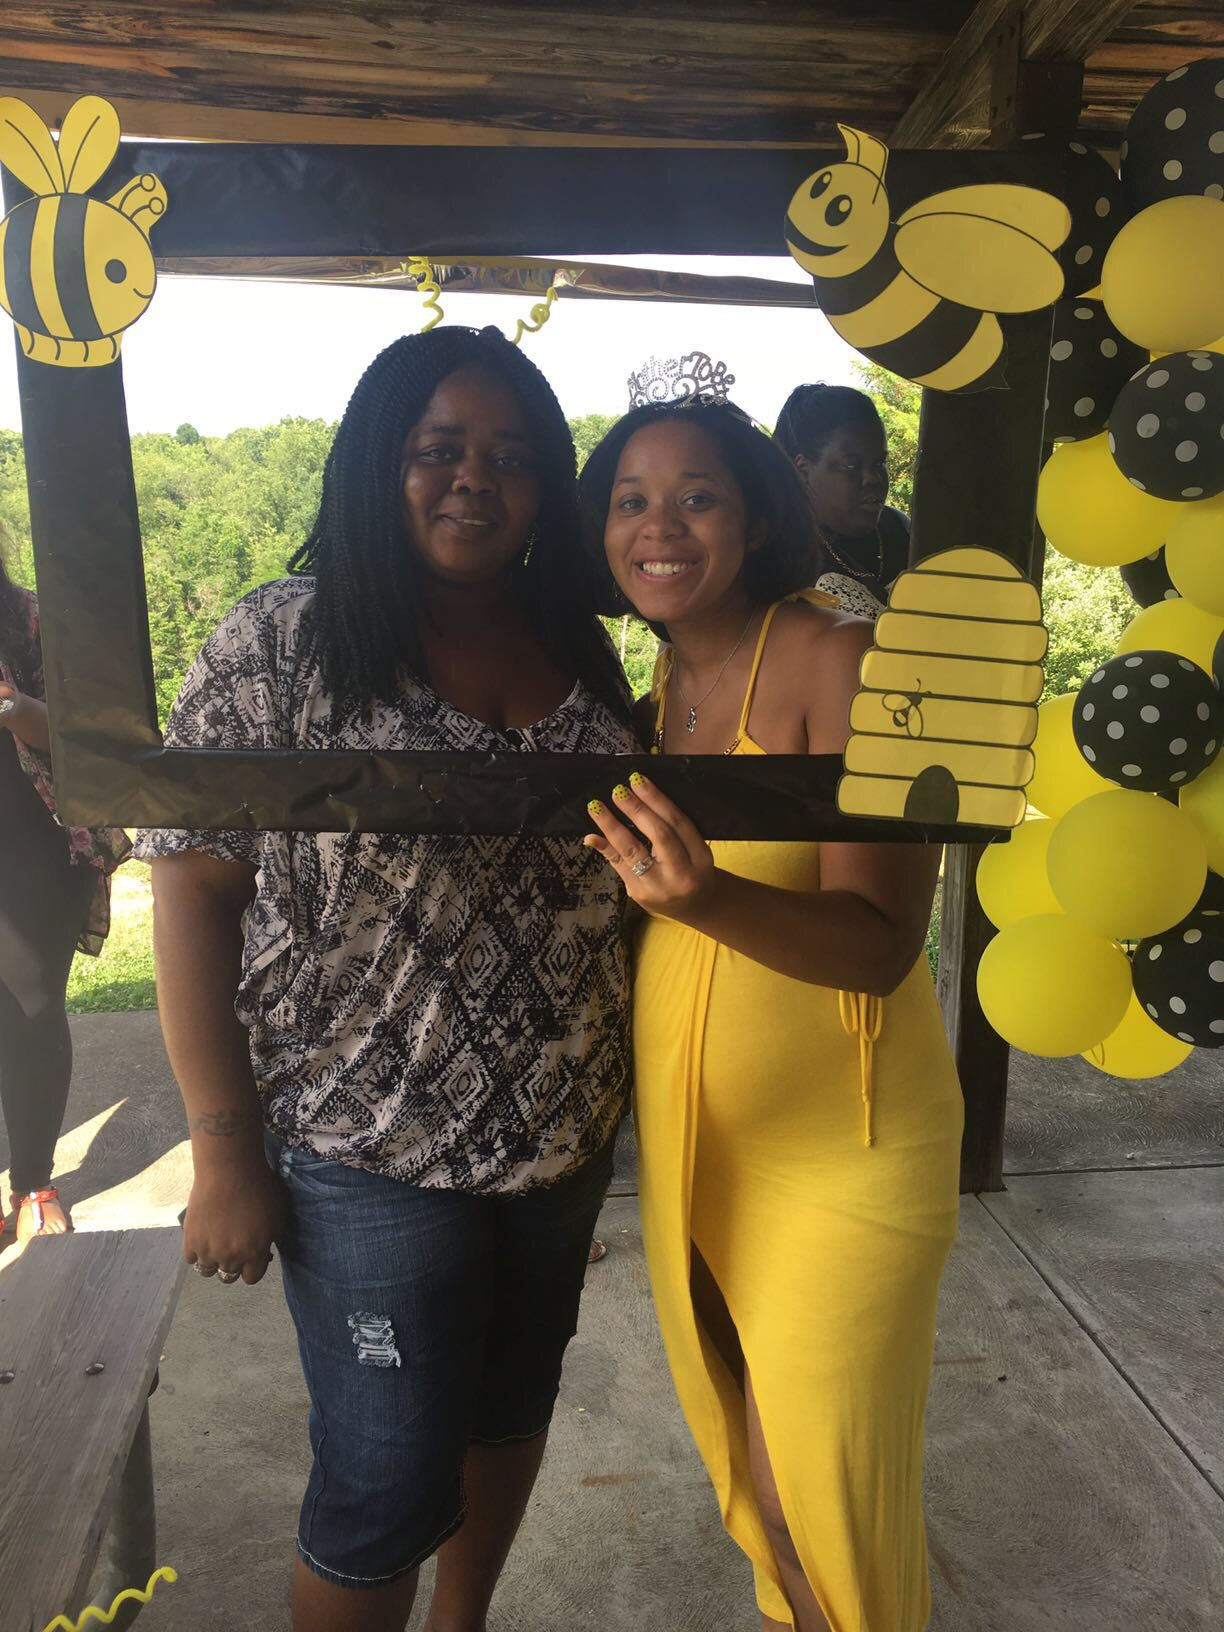 Bumble bee baby shower photo booth tamaras creations bumble bee baby shower photo booth solutioingenieria Choice Image